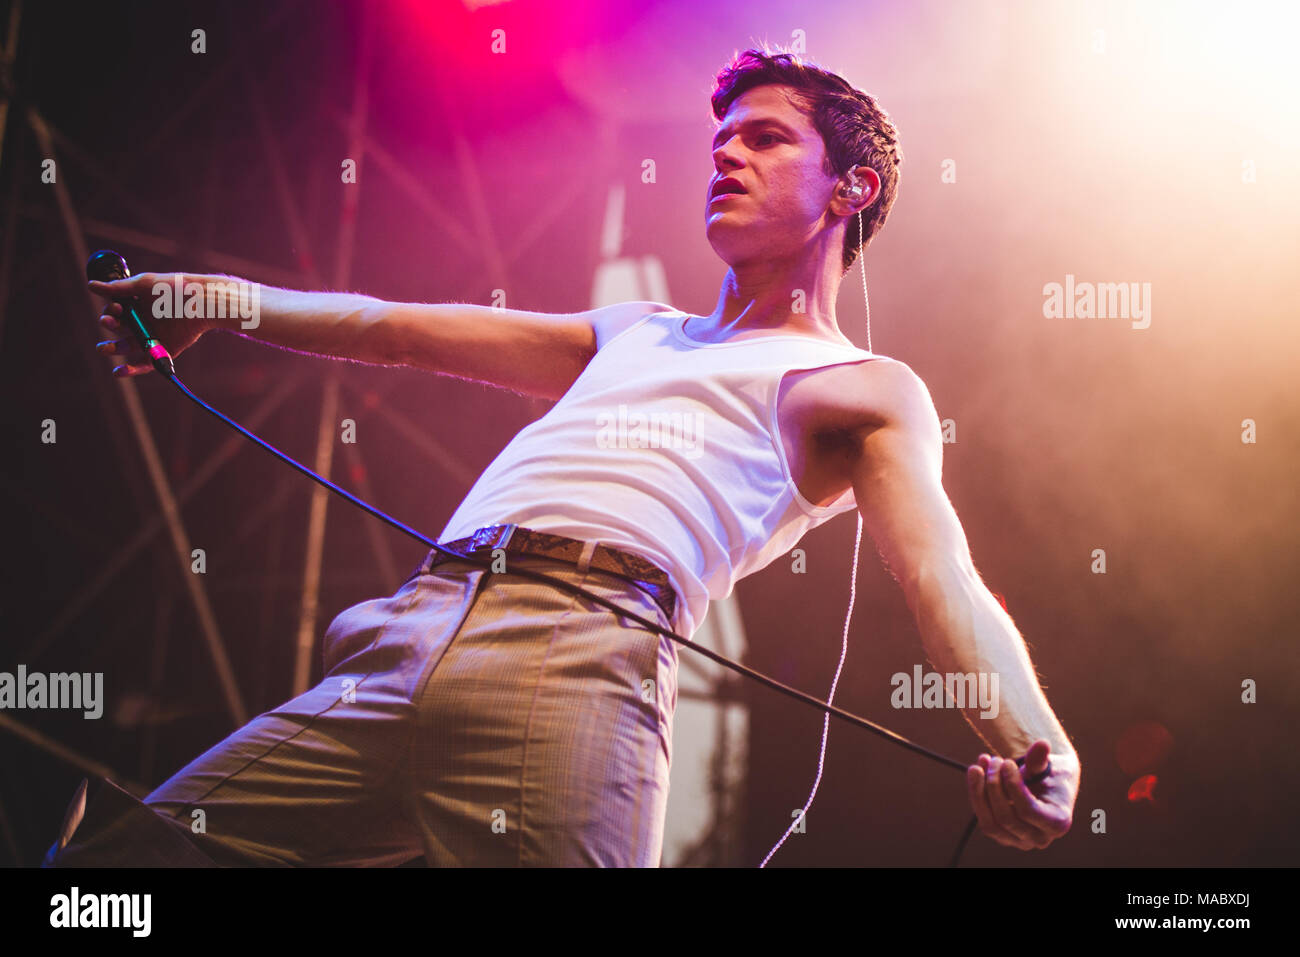 August 26th, 2017: Mike Hadreas, better knows as Perfume Genius, performing live on stage at the TODays festival 2017 in Torino. Photo: Alessandro Bos - Stock Image